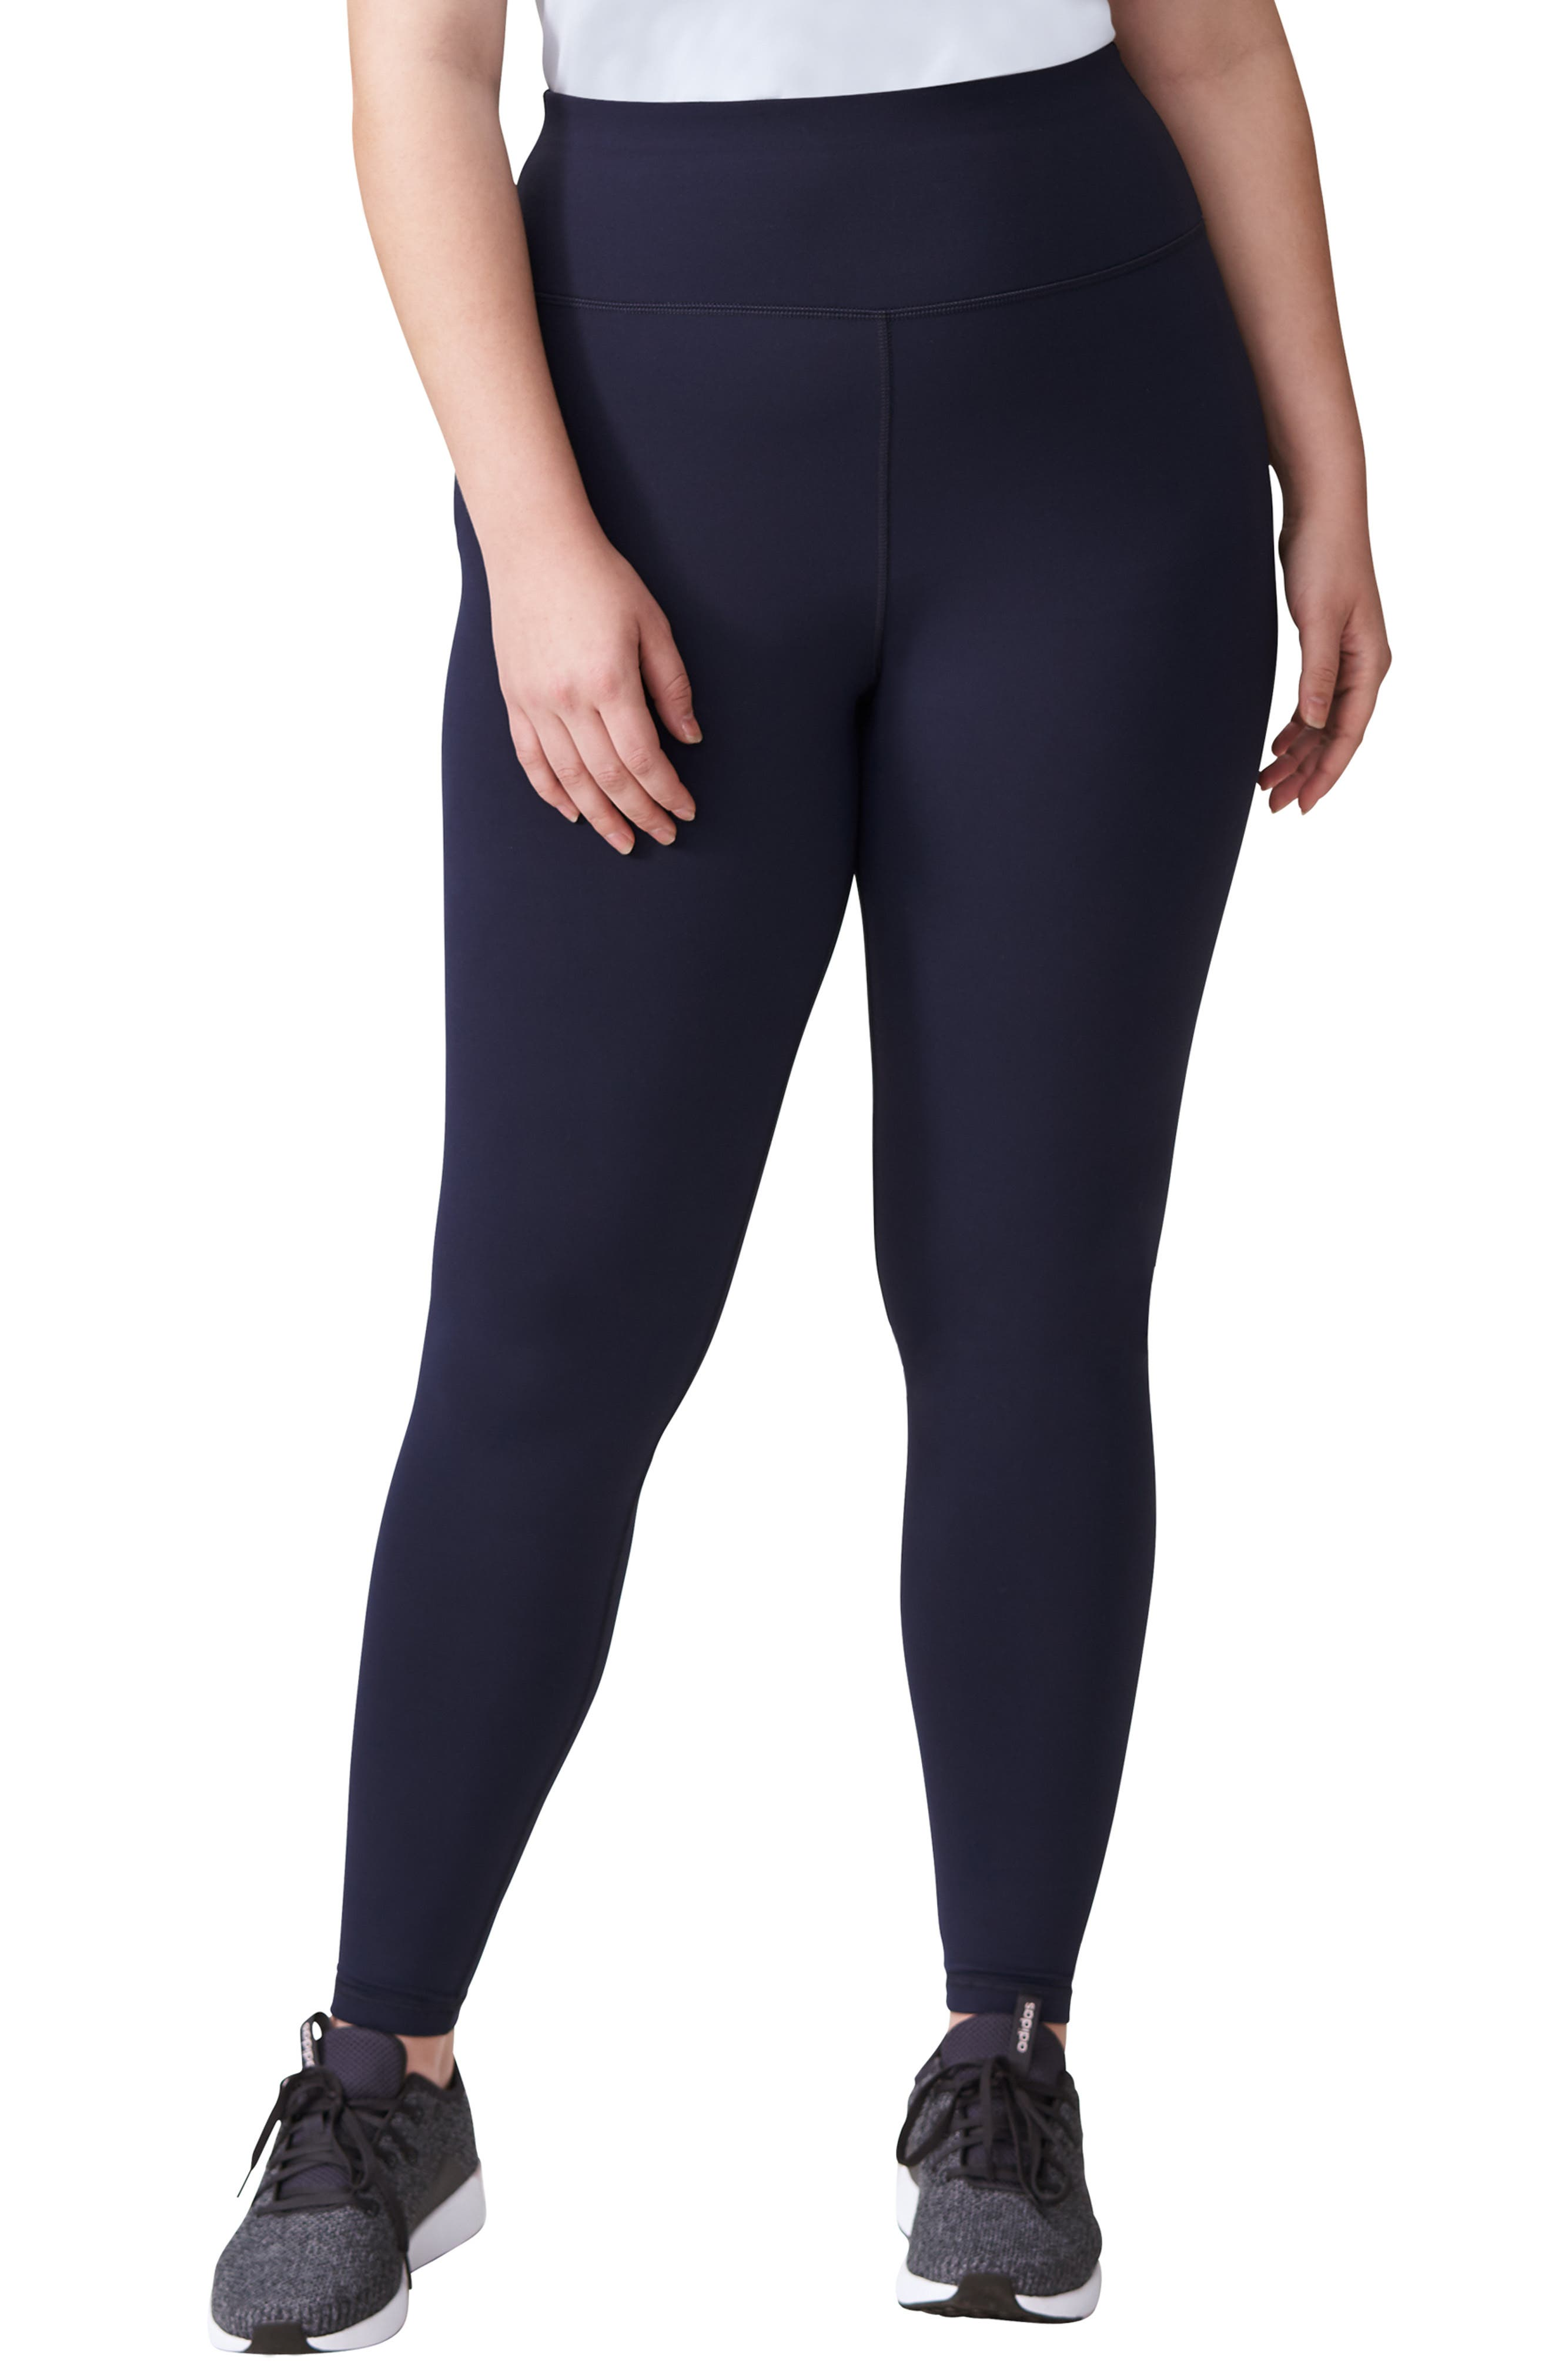 Plus Size Universal Standard Core Leggings, Size M (18W-20W) - Blue